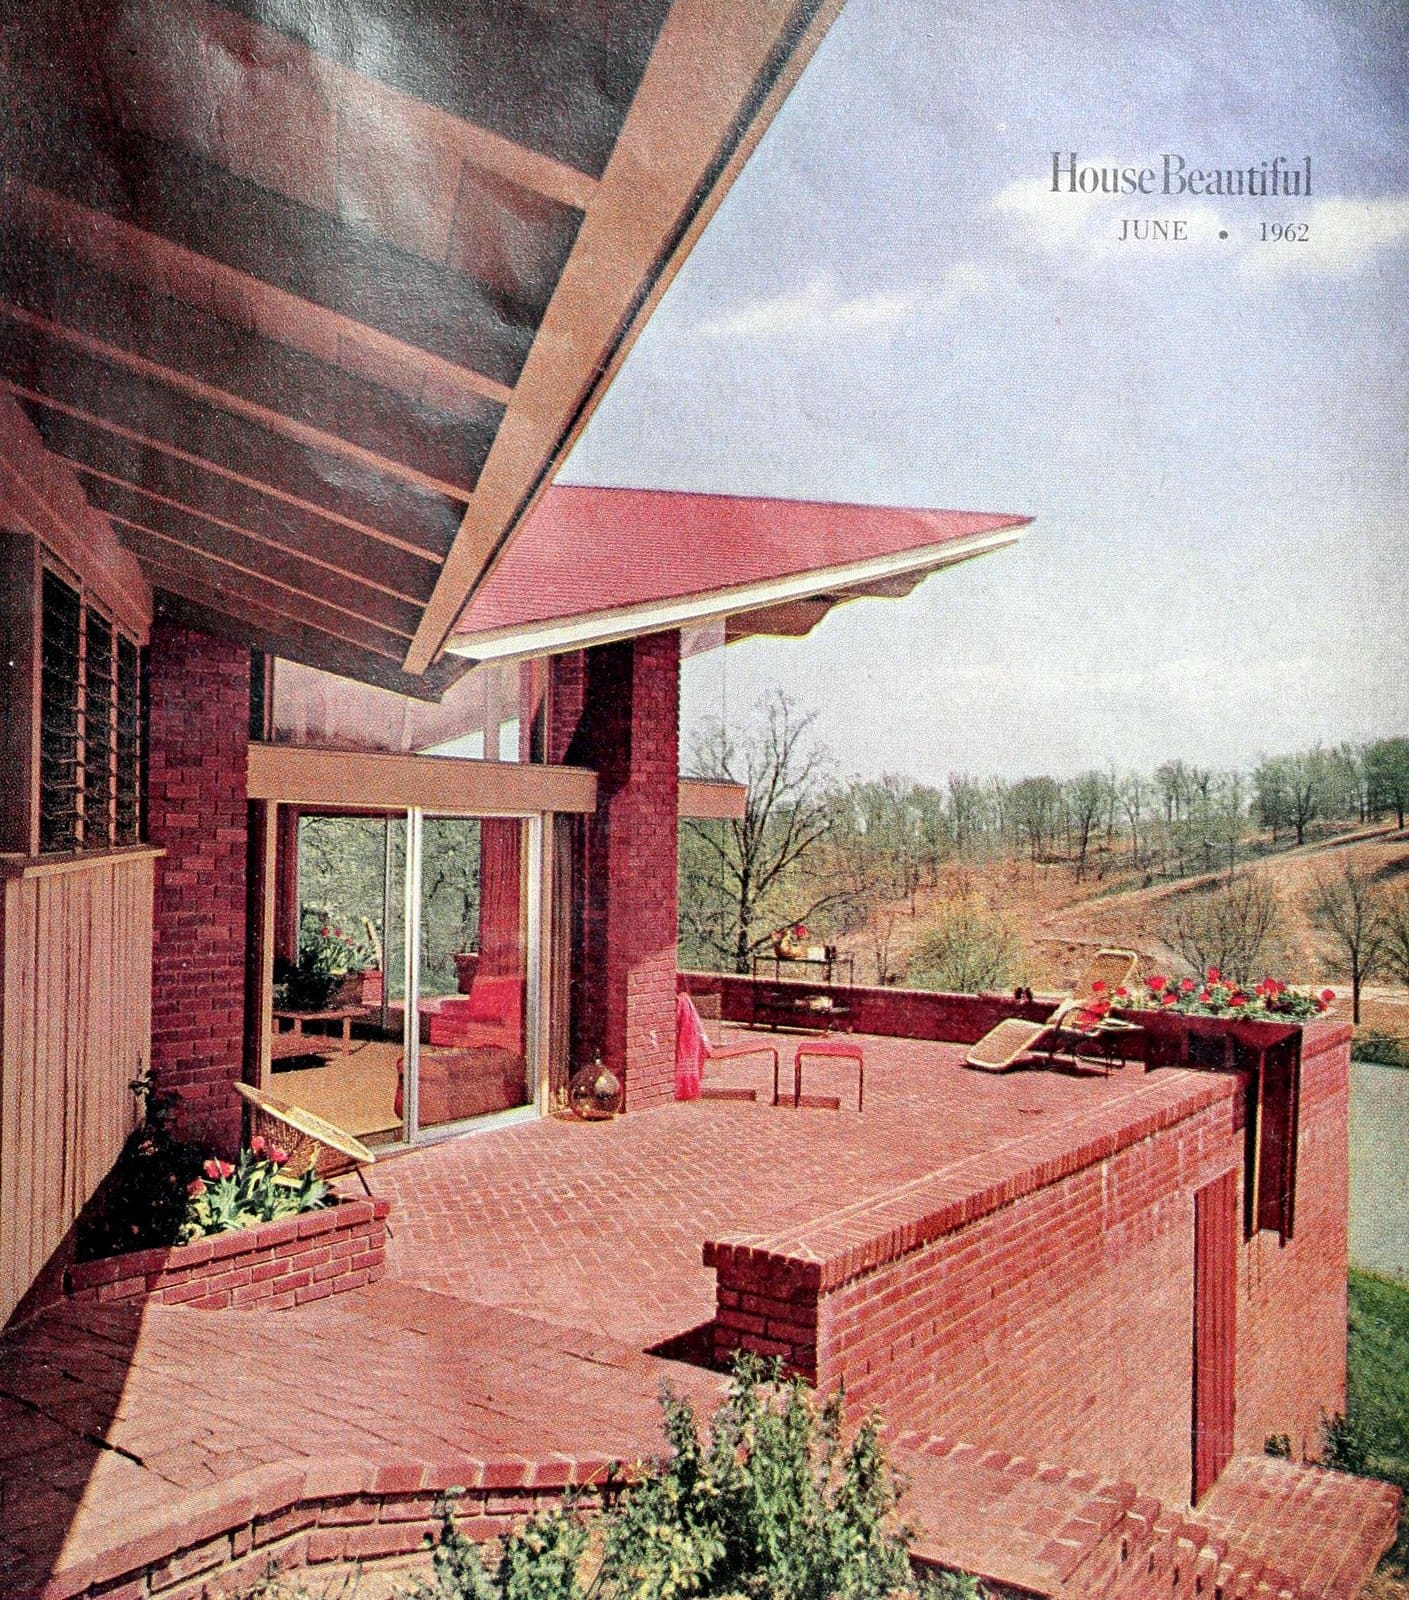 Brick terraced backyard and decking, with angled views of the home (1962)